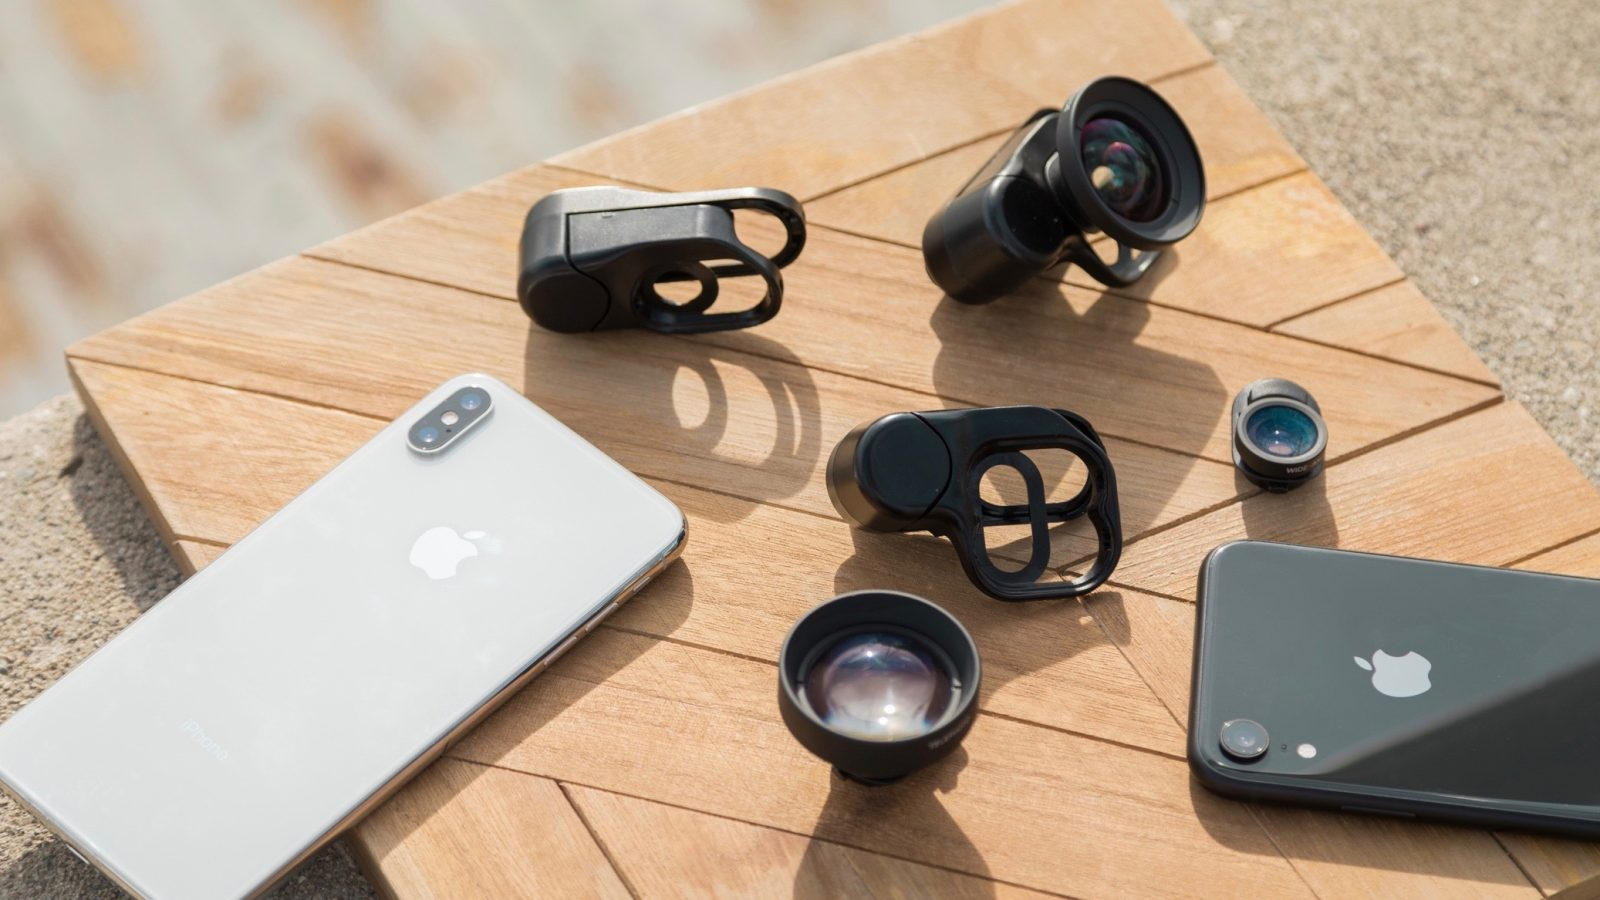 3-in-1 Lens Kit for Apple iPhone